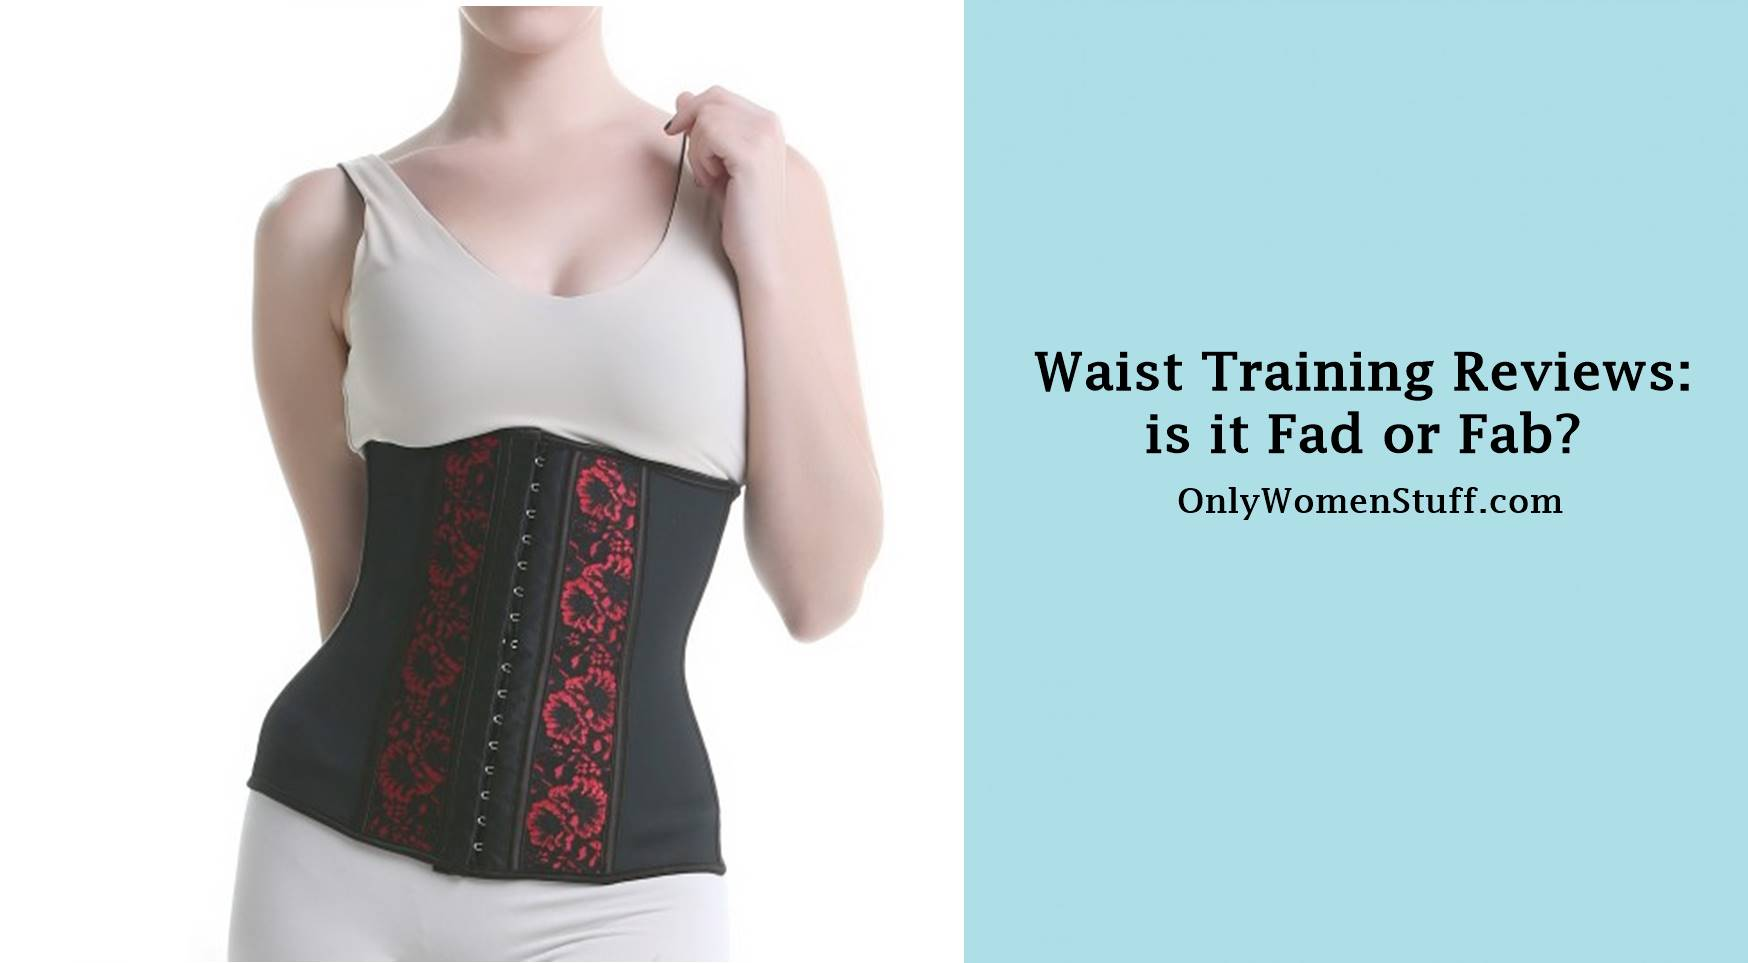 Waist Training Reviews is it Fad or Fab